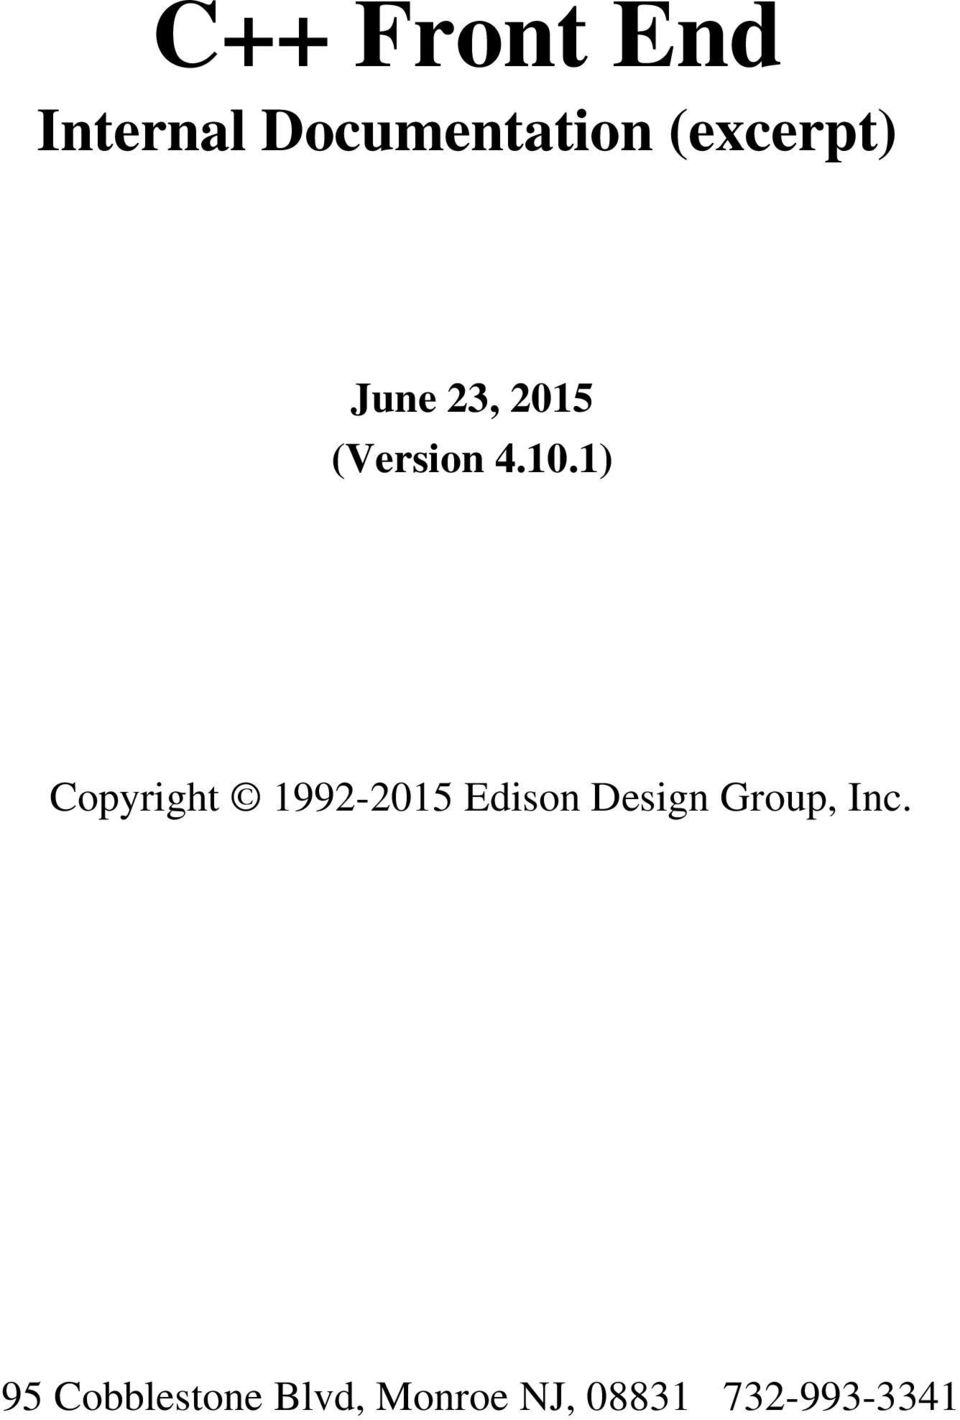 1) Copyright 1992-2015 Edison Design Group,